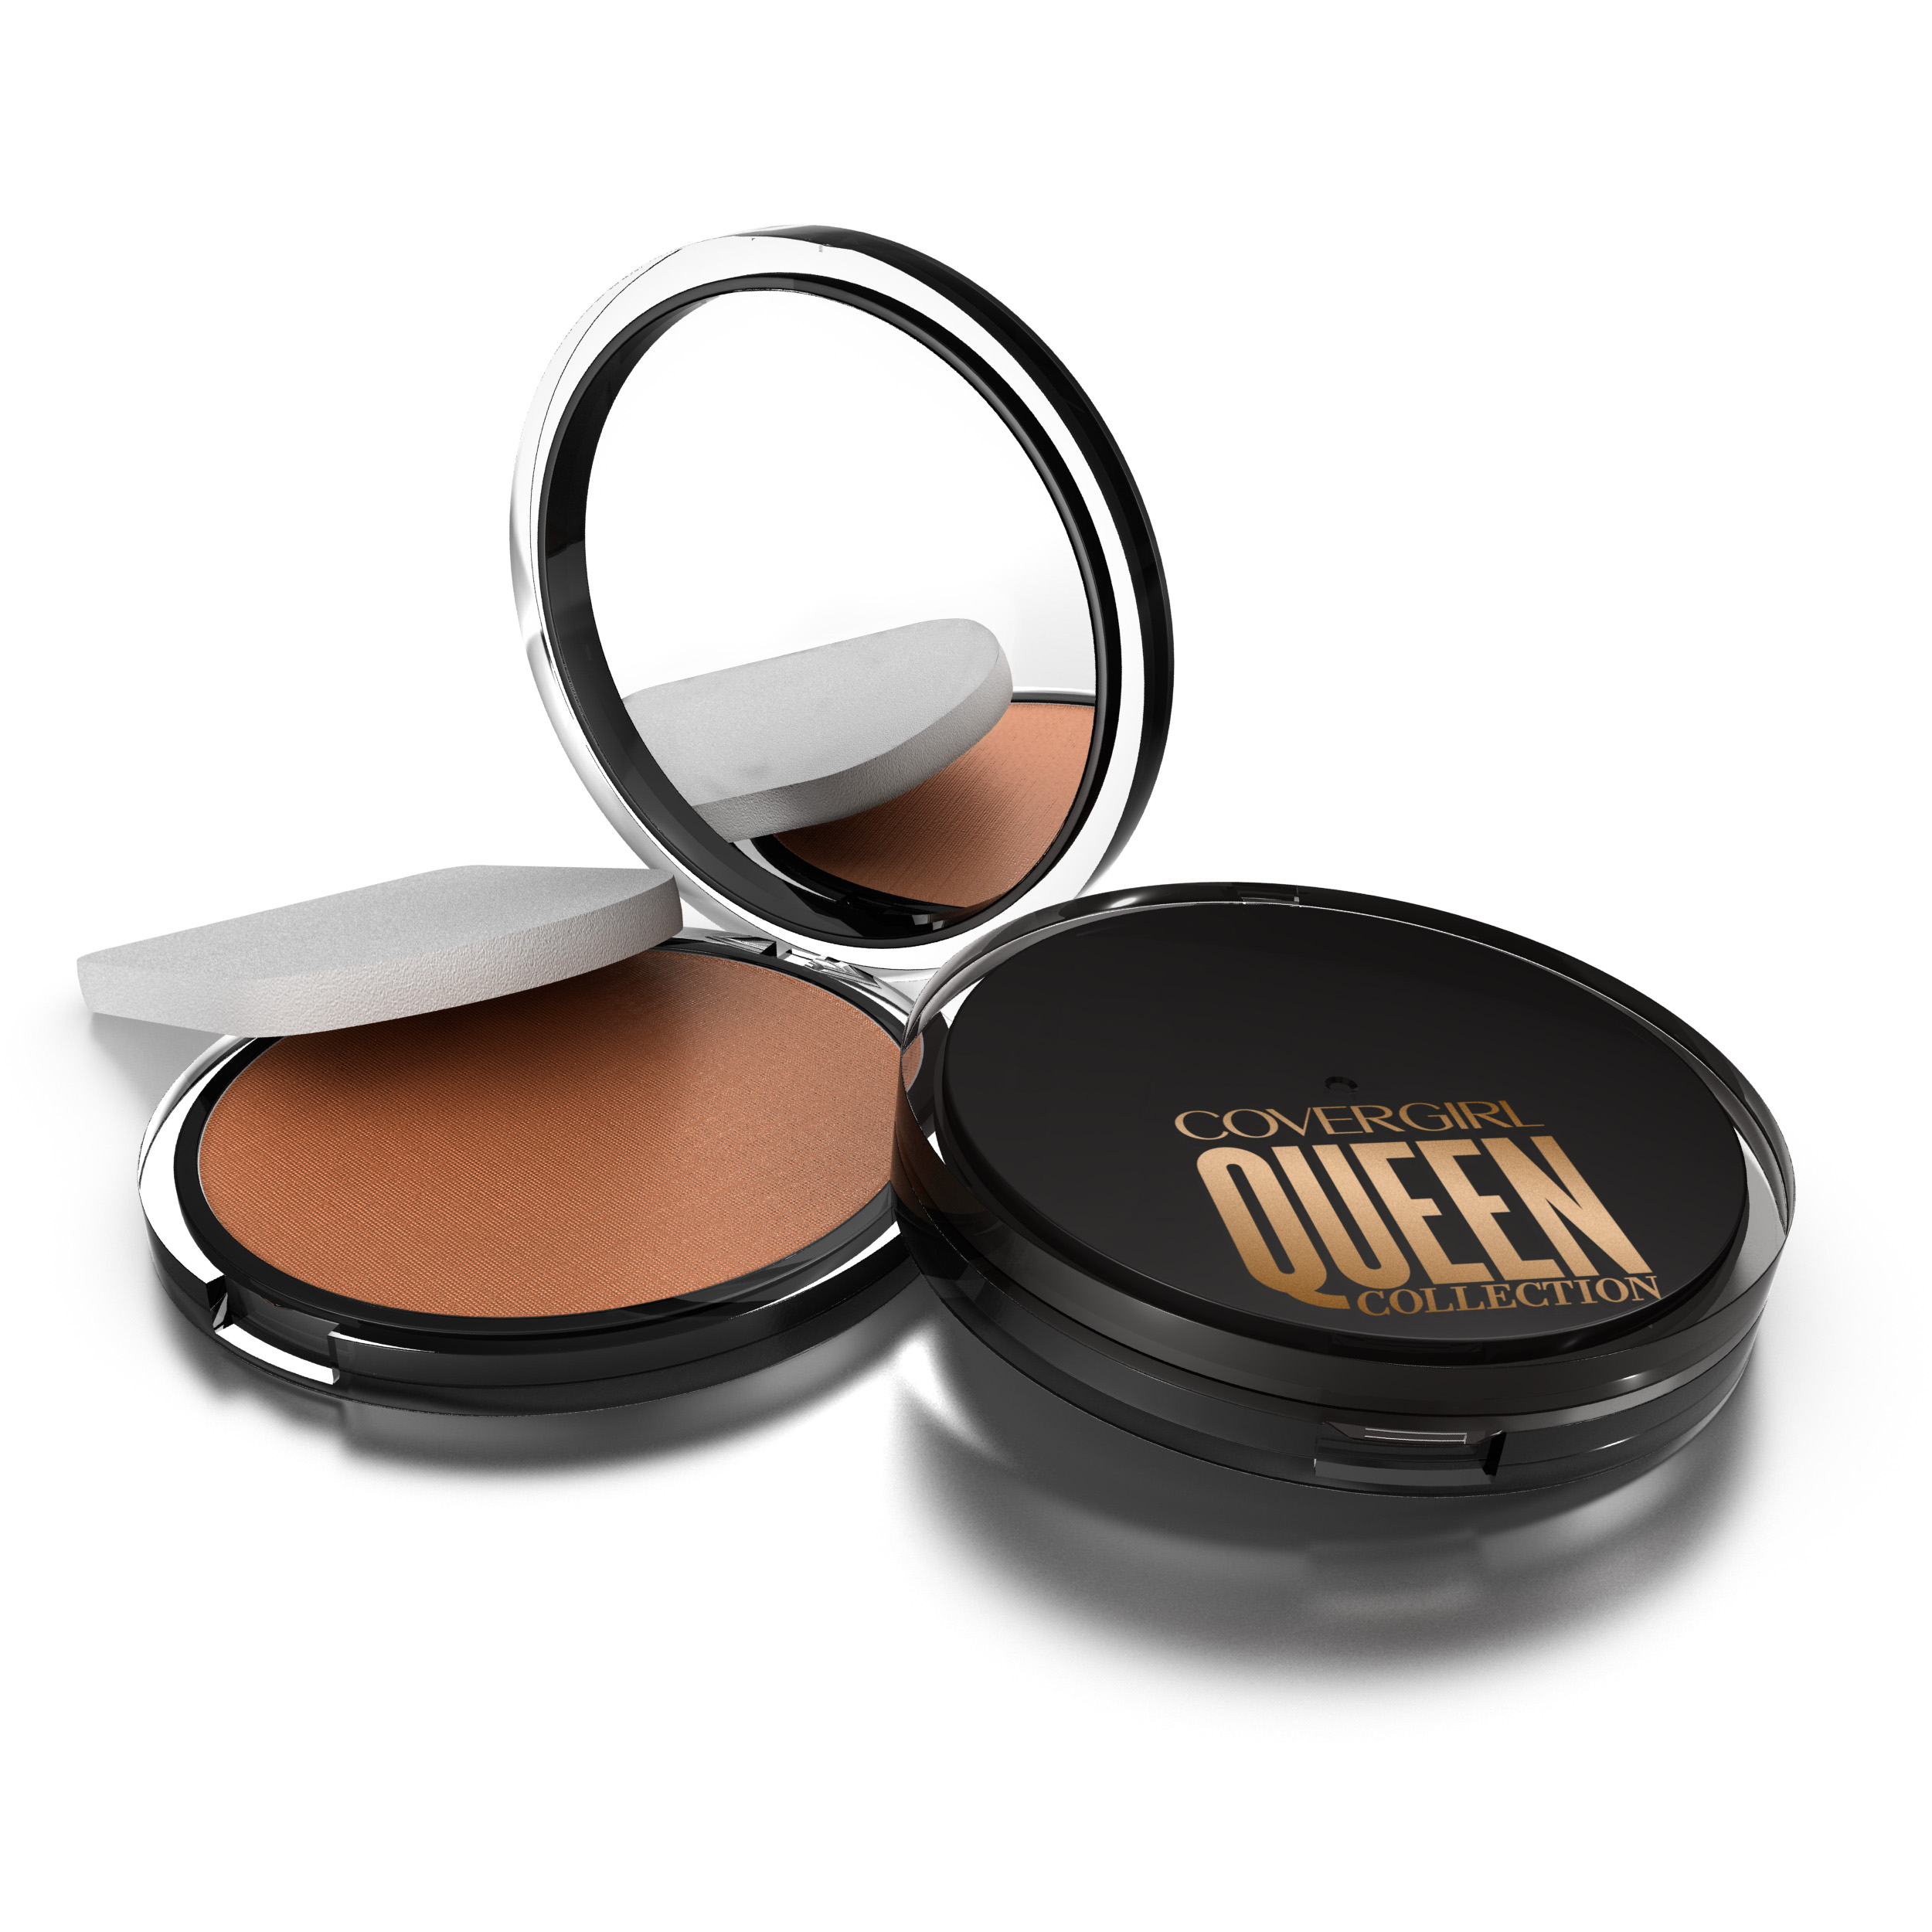 CG Queen Lasting Matte Pressed Powder Foundation Golden Medium